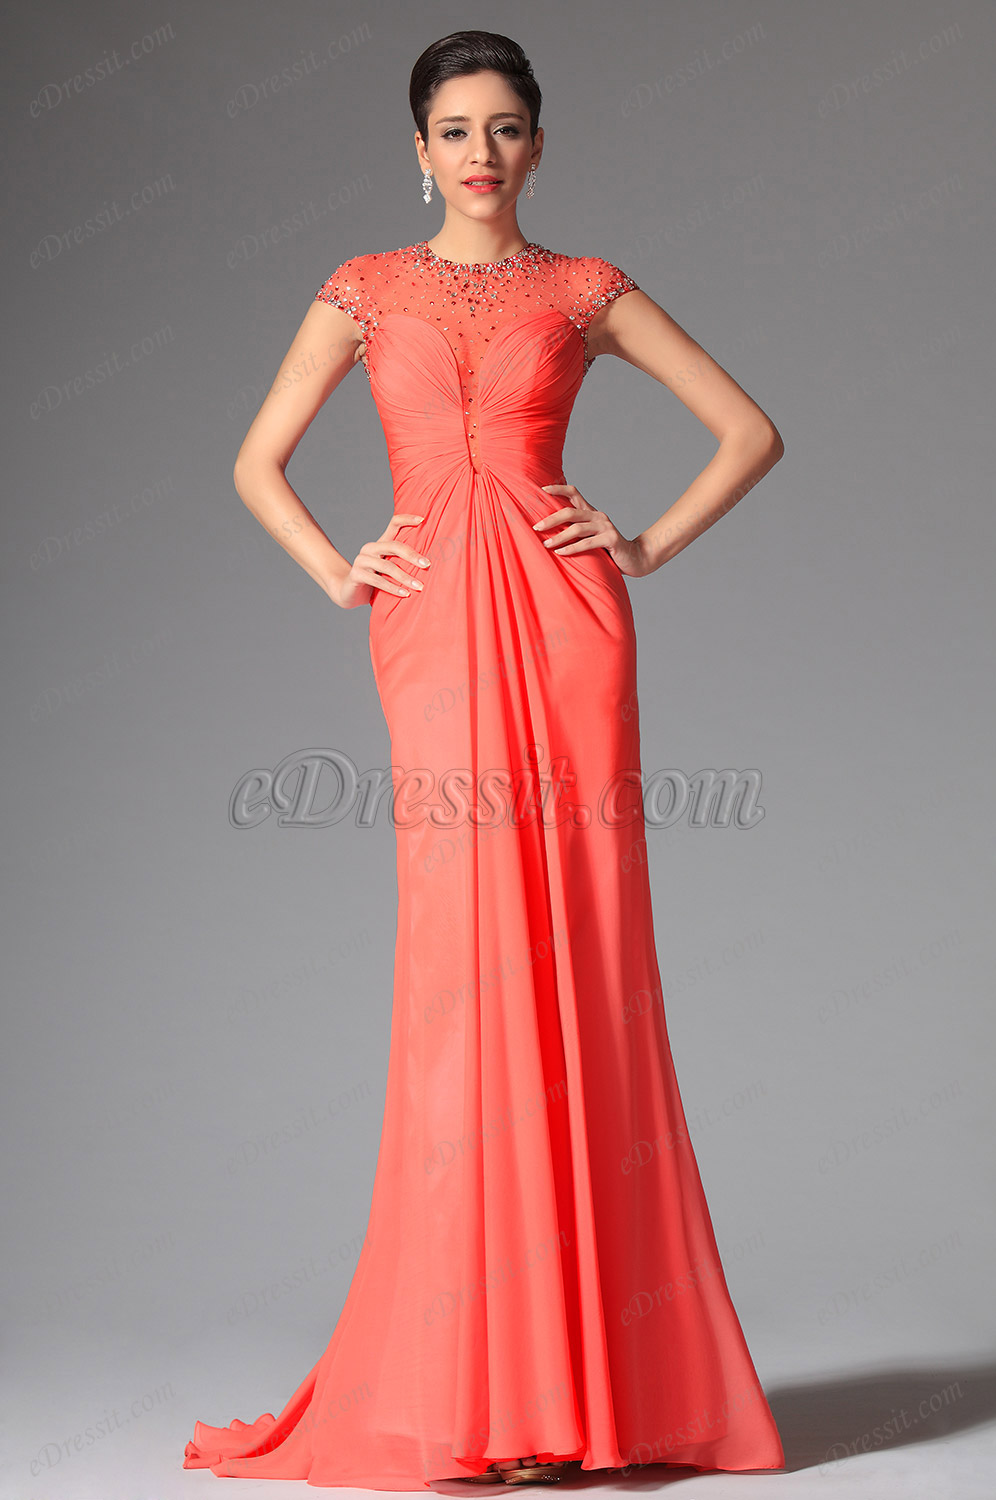 Coral dresses with sleeves photo